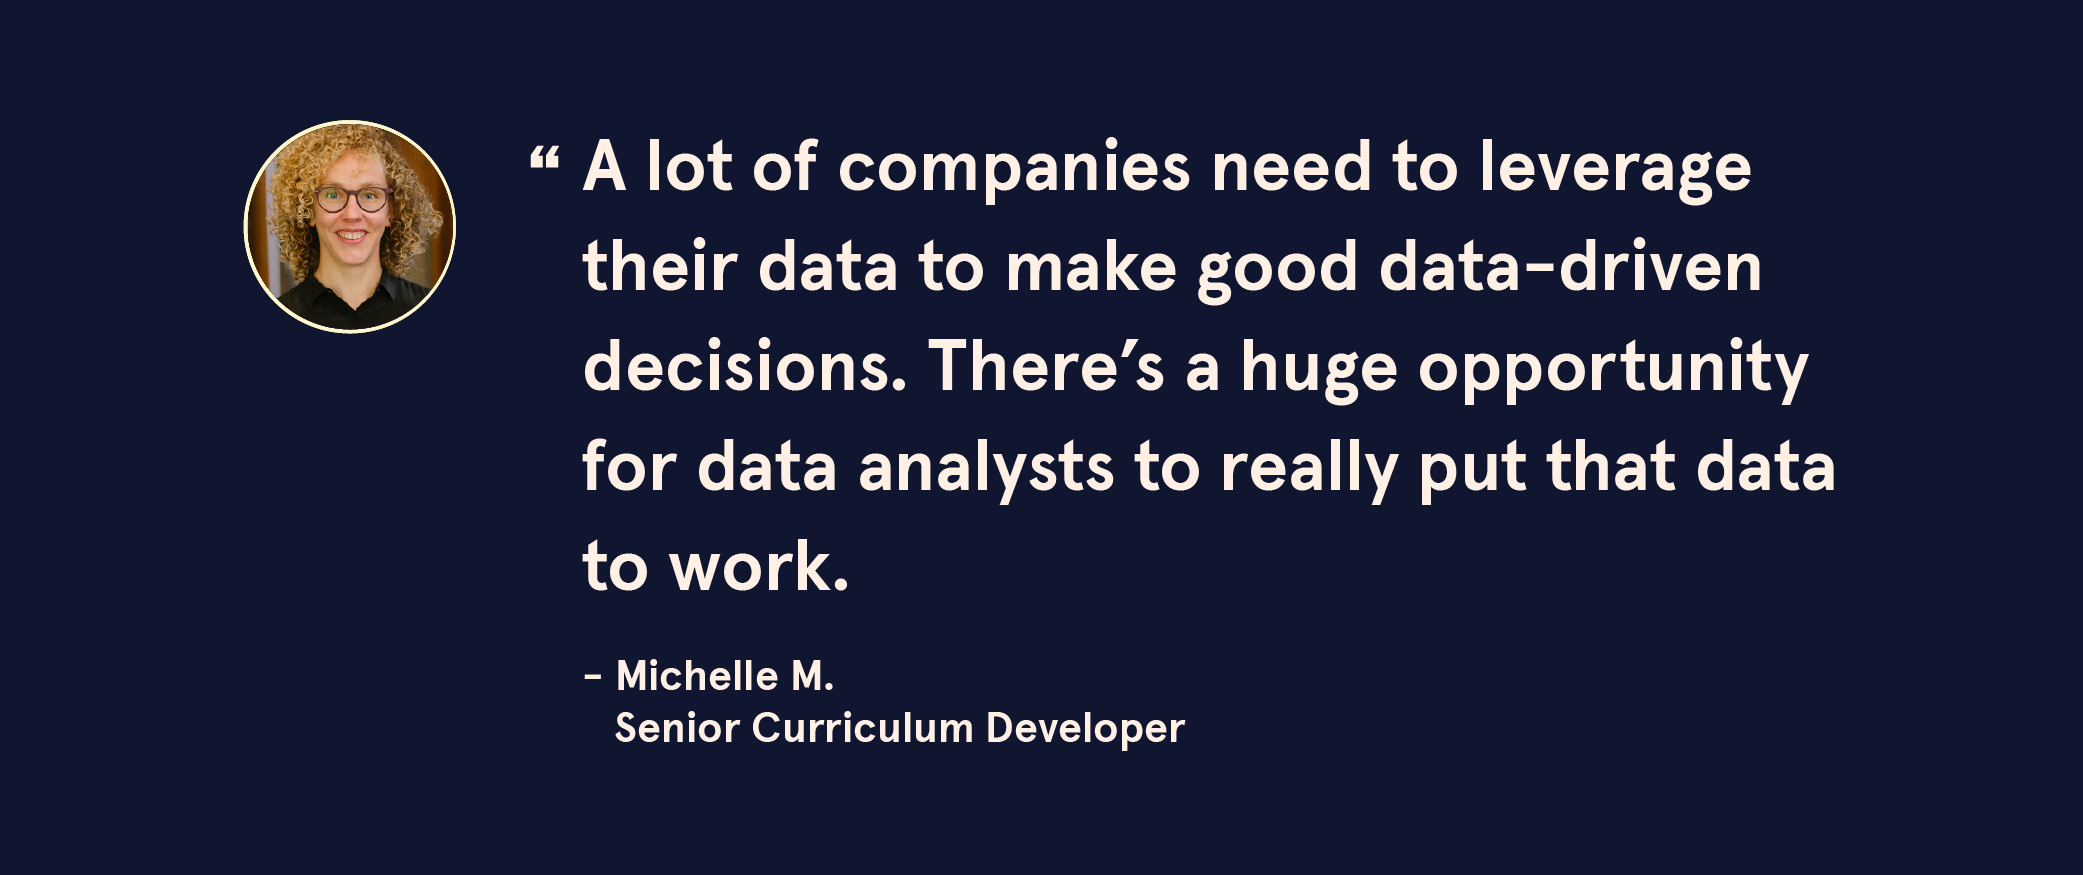 "Quote Image: ""A lot of companies need to leverage their data to make good data-driven decisions. There's a huge opportunity for data analysts to really put that data to work."" - Michelle M., Senior Curriculum Developer"